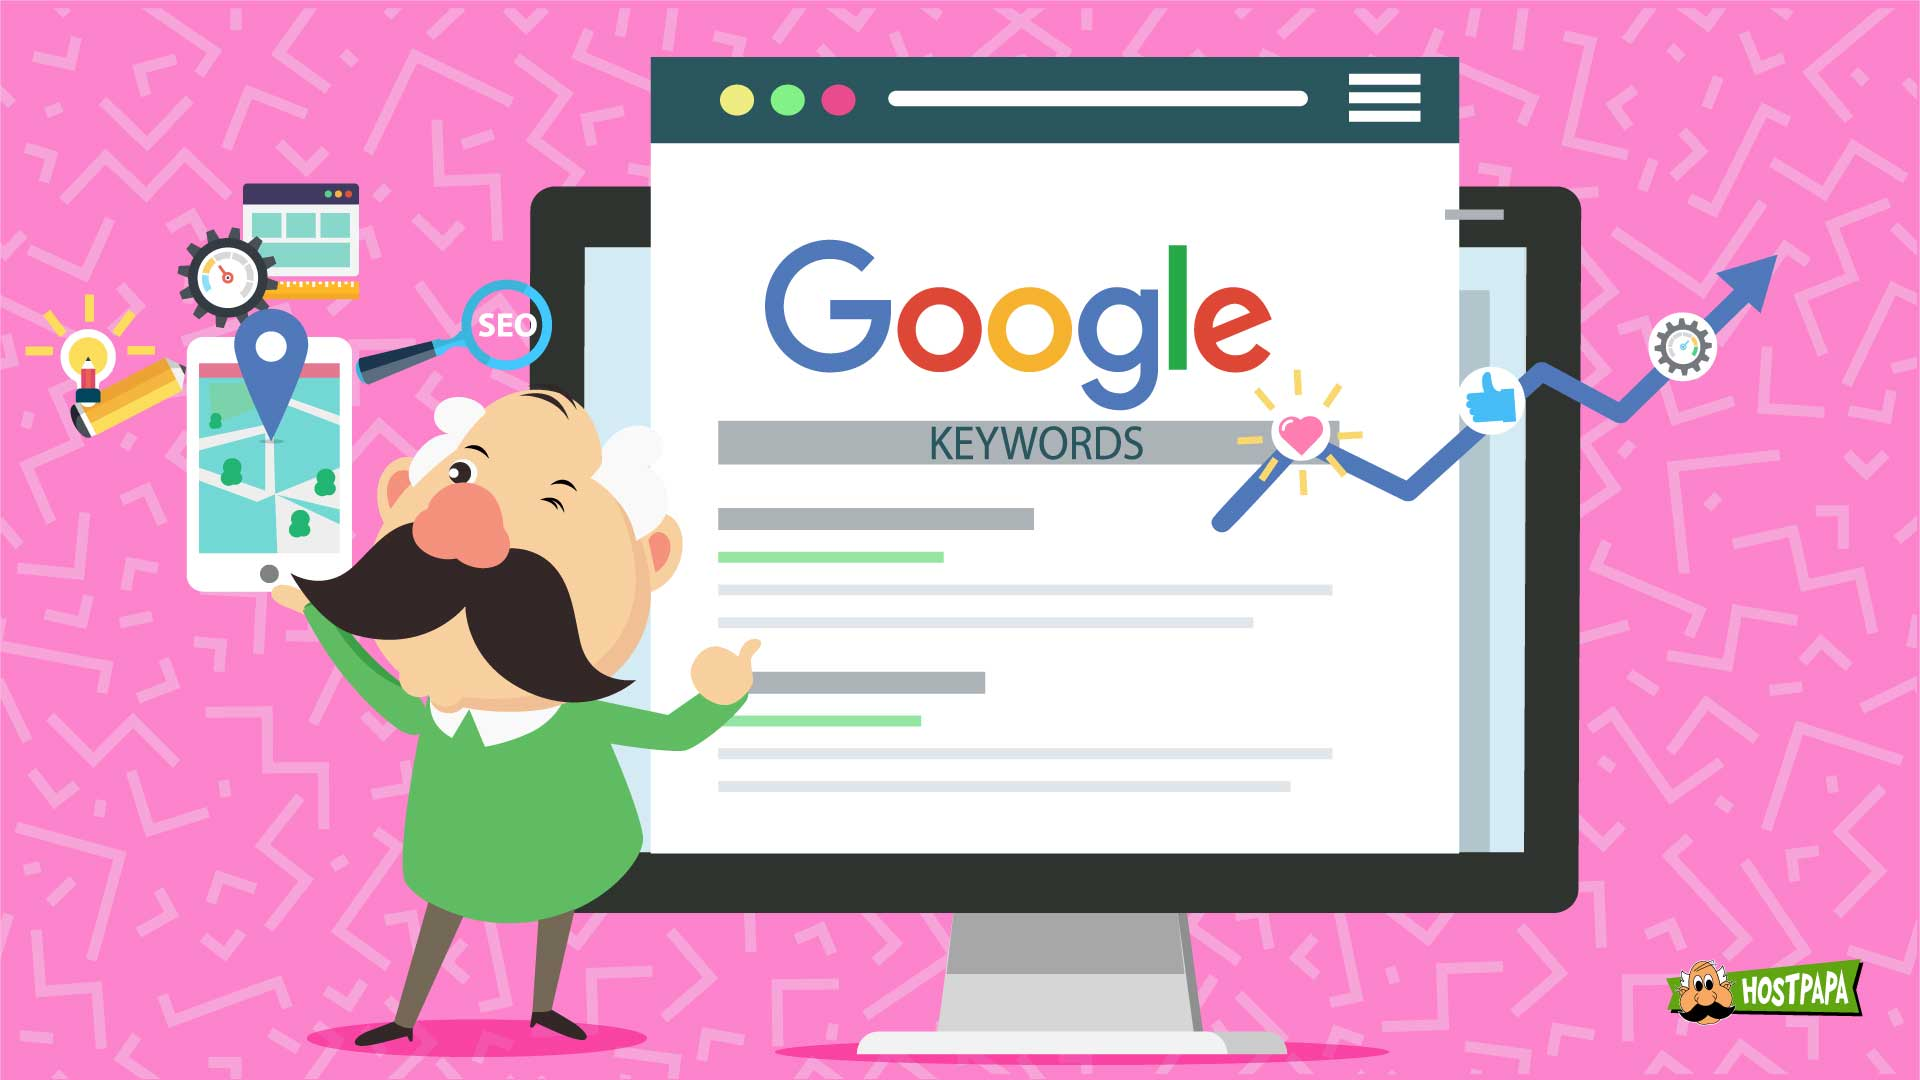 6 Local SEO Tips for Your Business